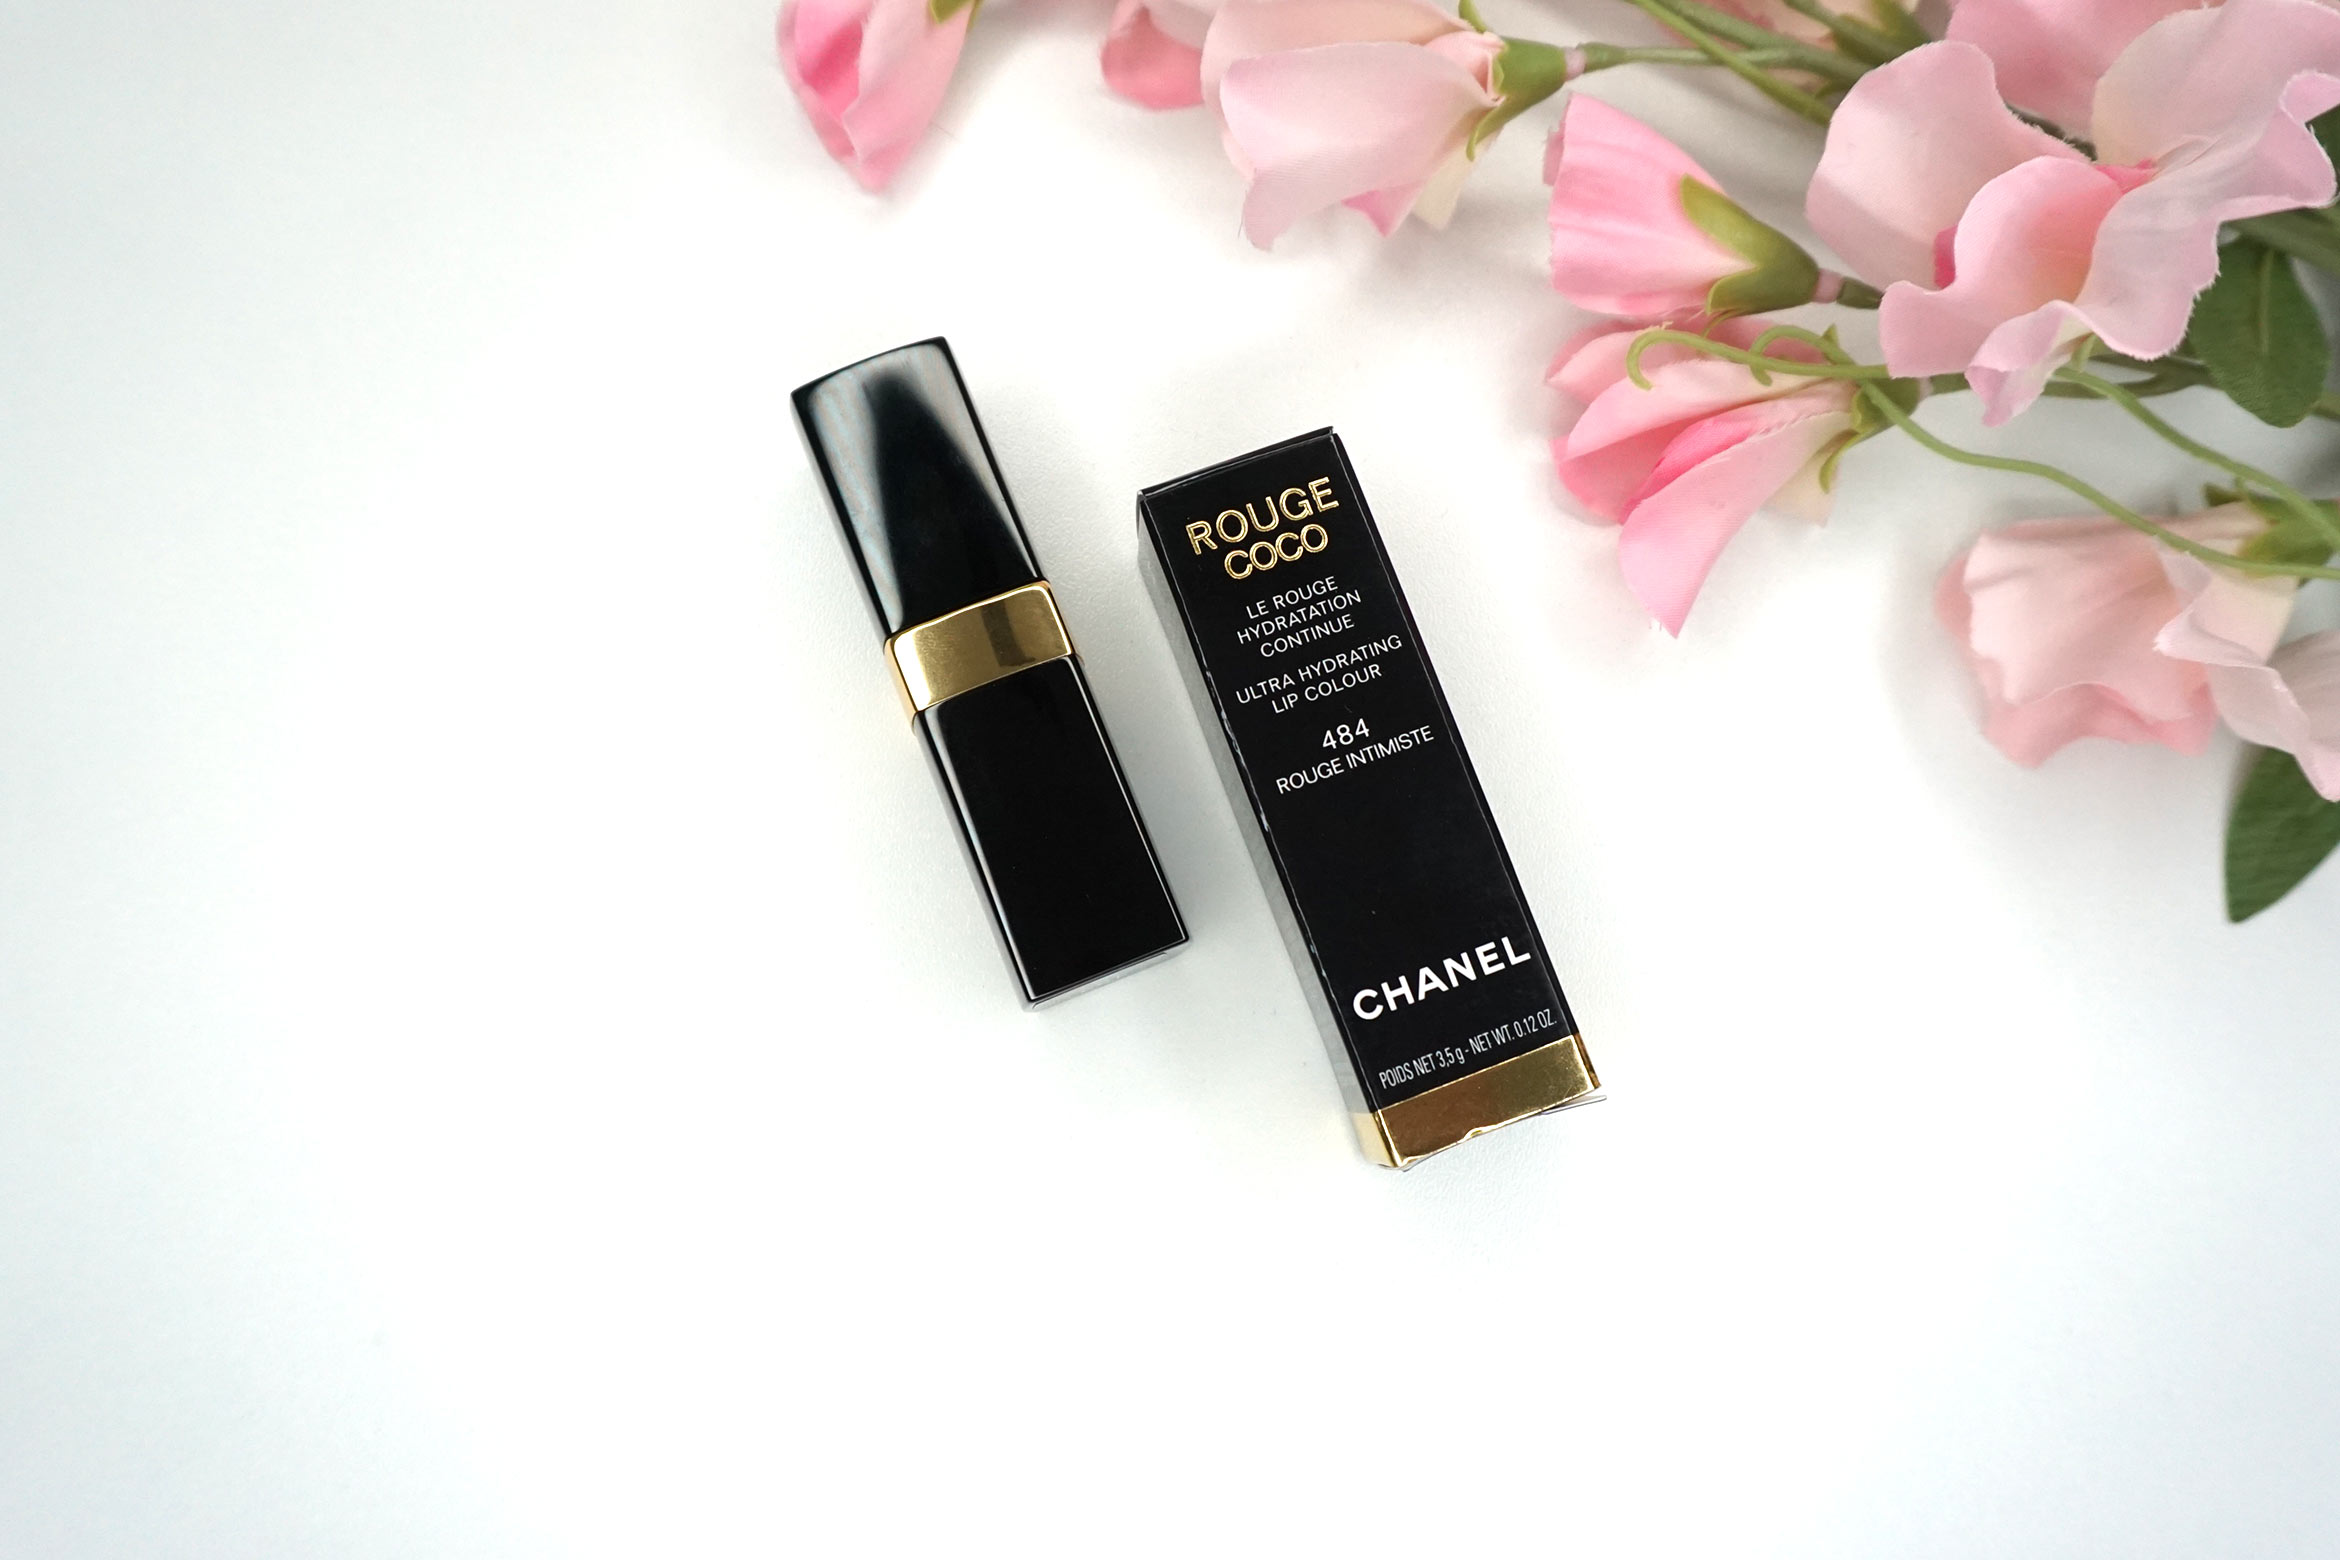 Chanel-rouge-coco-rouge-intimiste-484-review-7